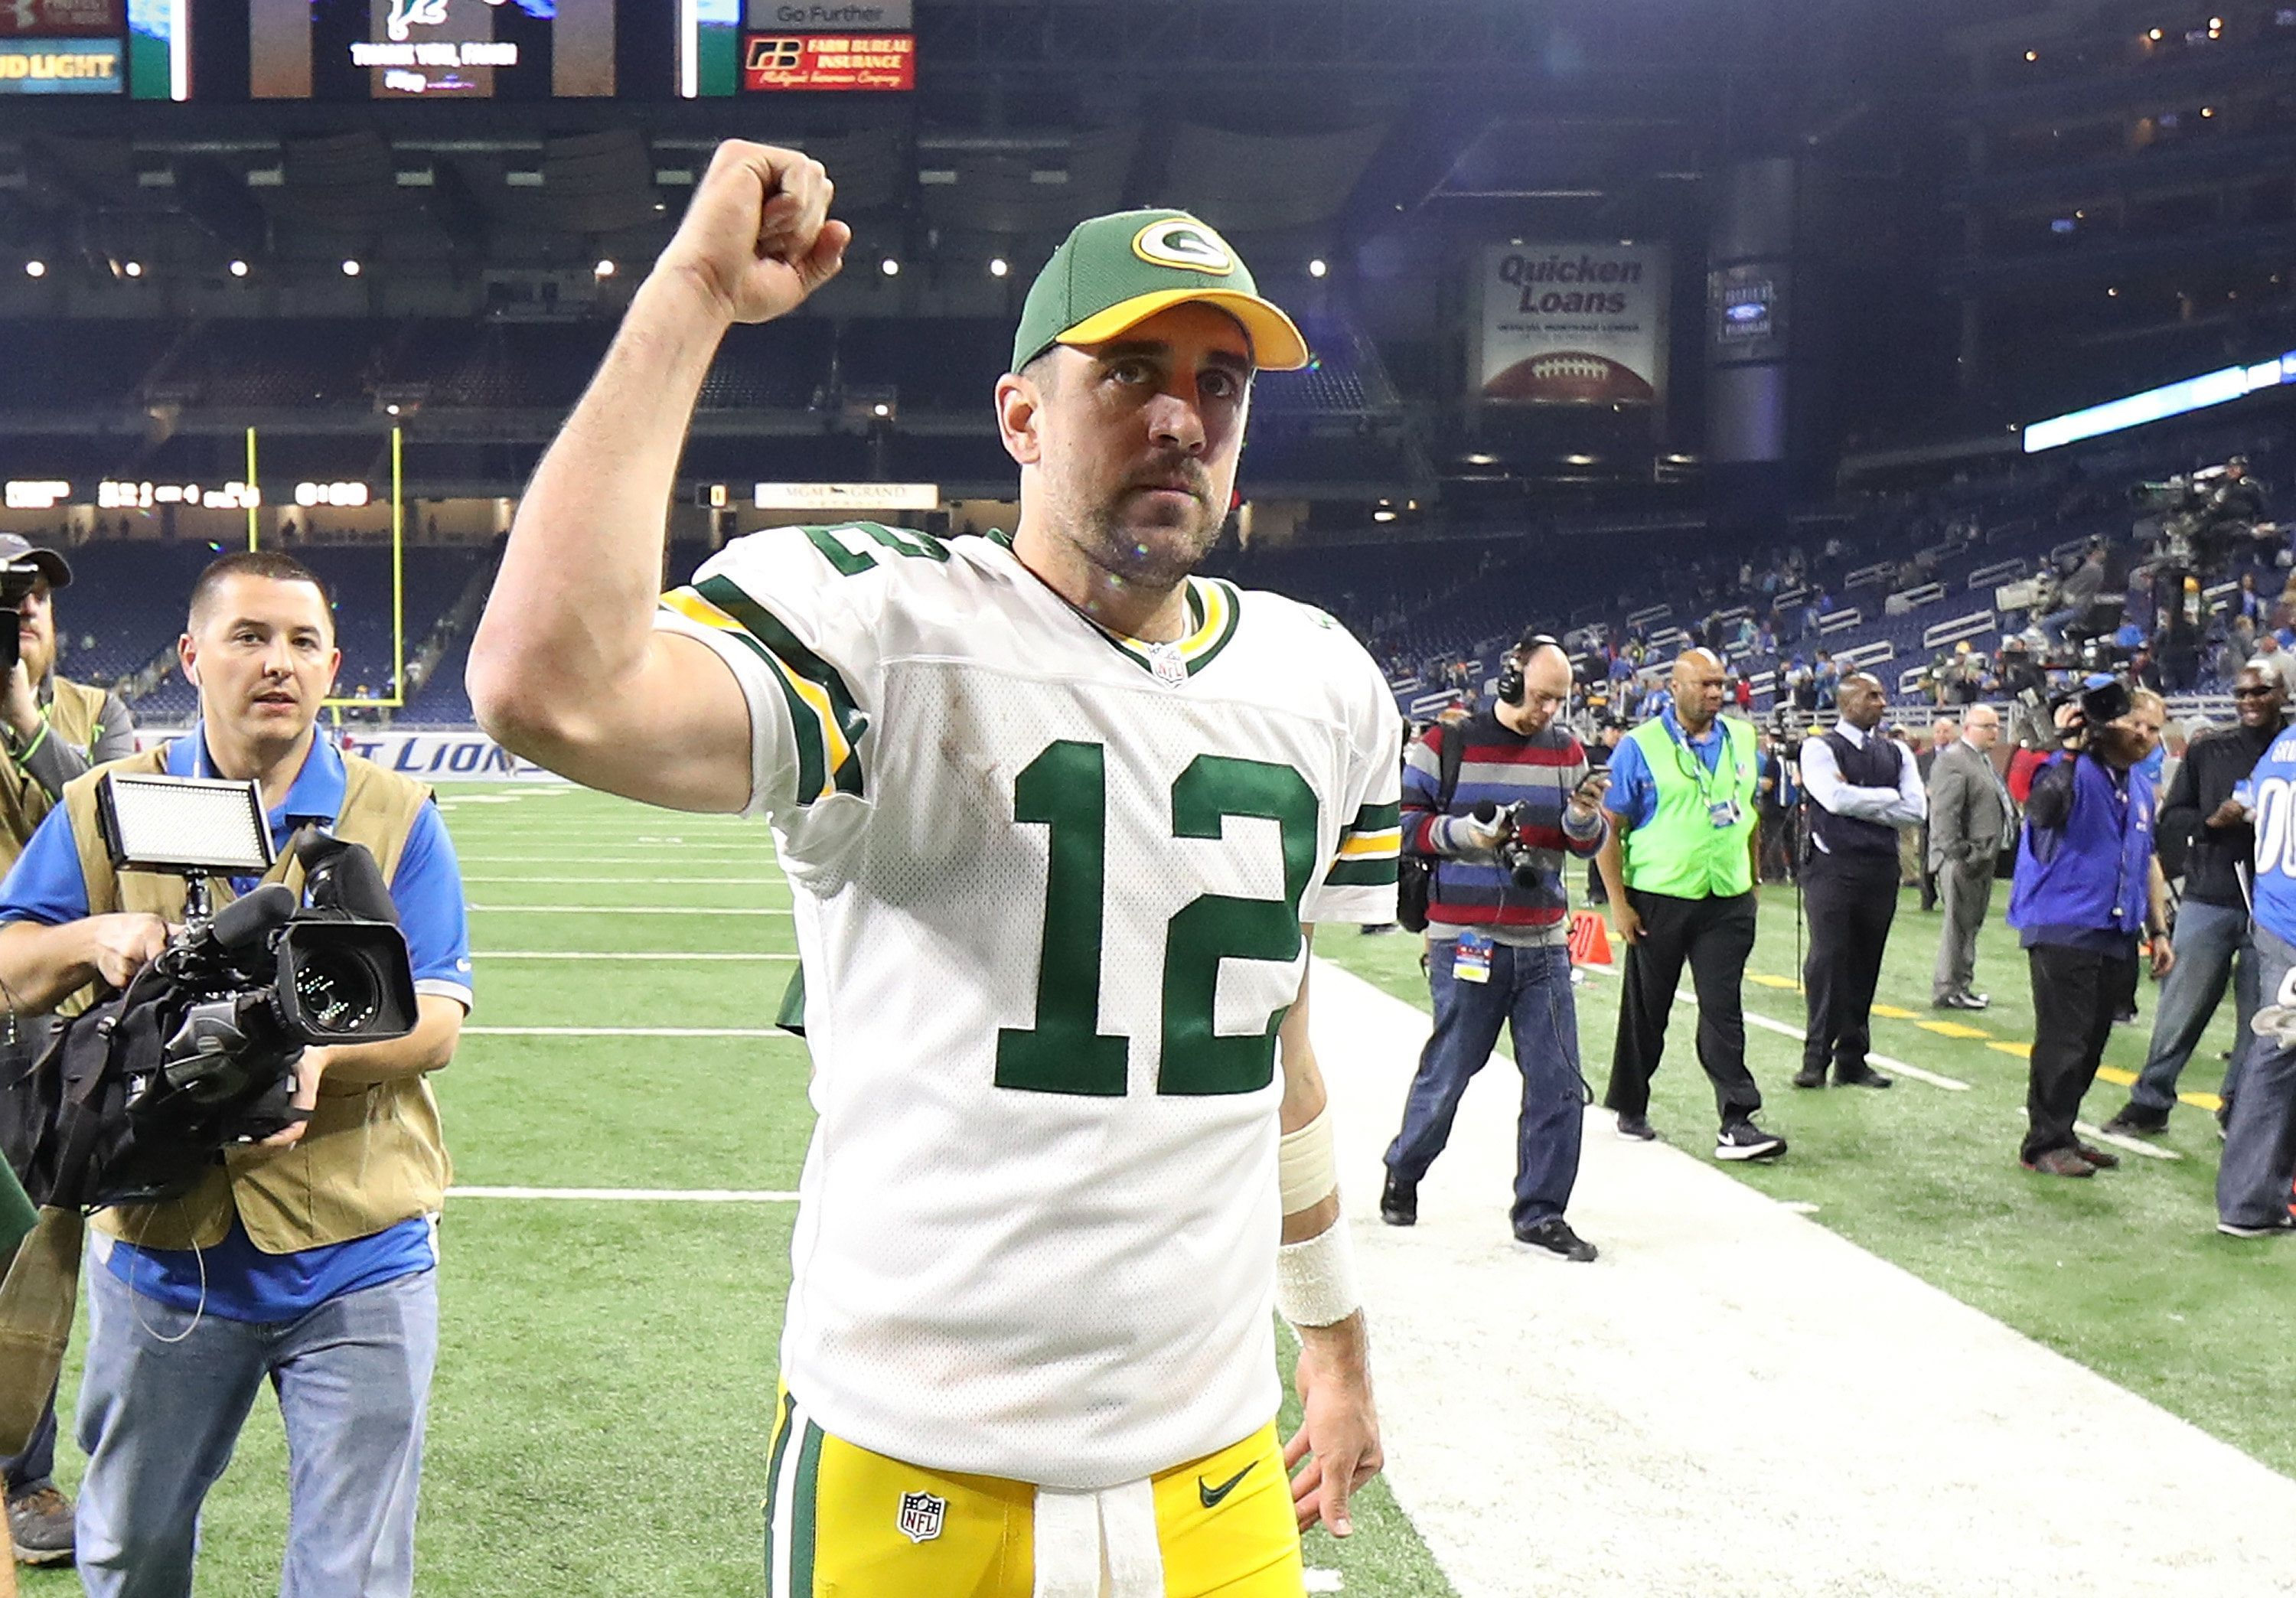 Packers quarterback Aaron Rodgers led the league with 40 touchdown passes this season, and may be on his way to a third MVP s